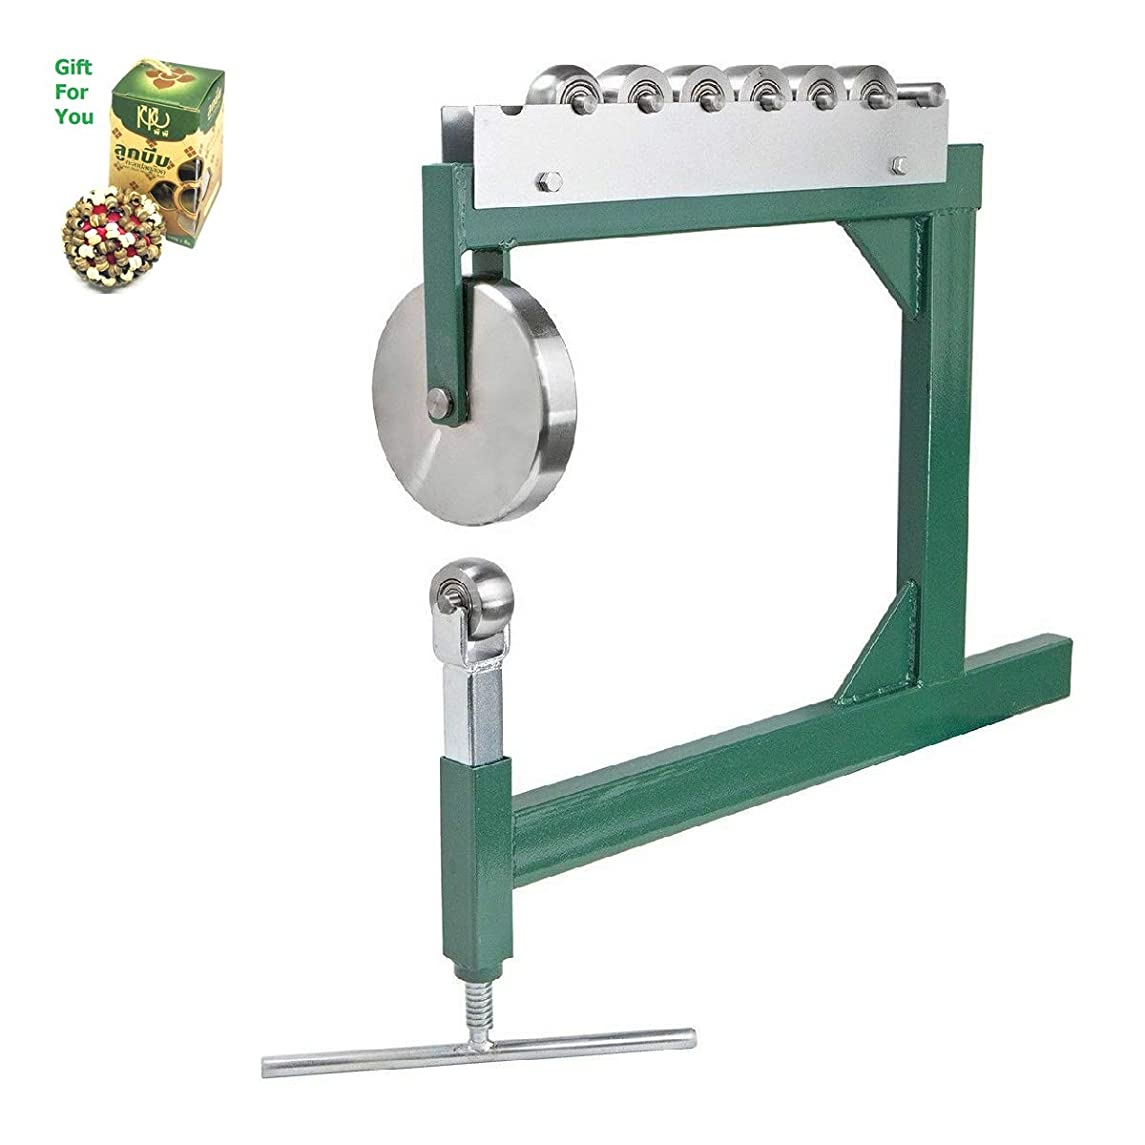 English Shaping Wheel Sturdy Workbench Sheet Metal Sharper Benchtop Machine HD By SpiritOne + GIFT Coconut Shell Massage Ball